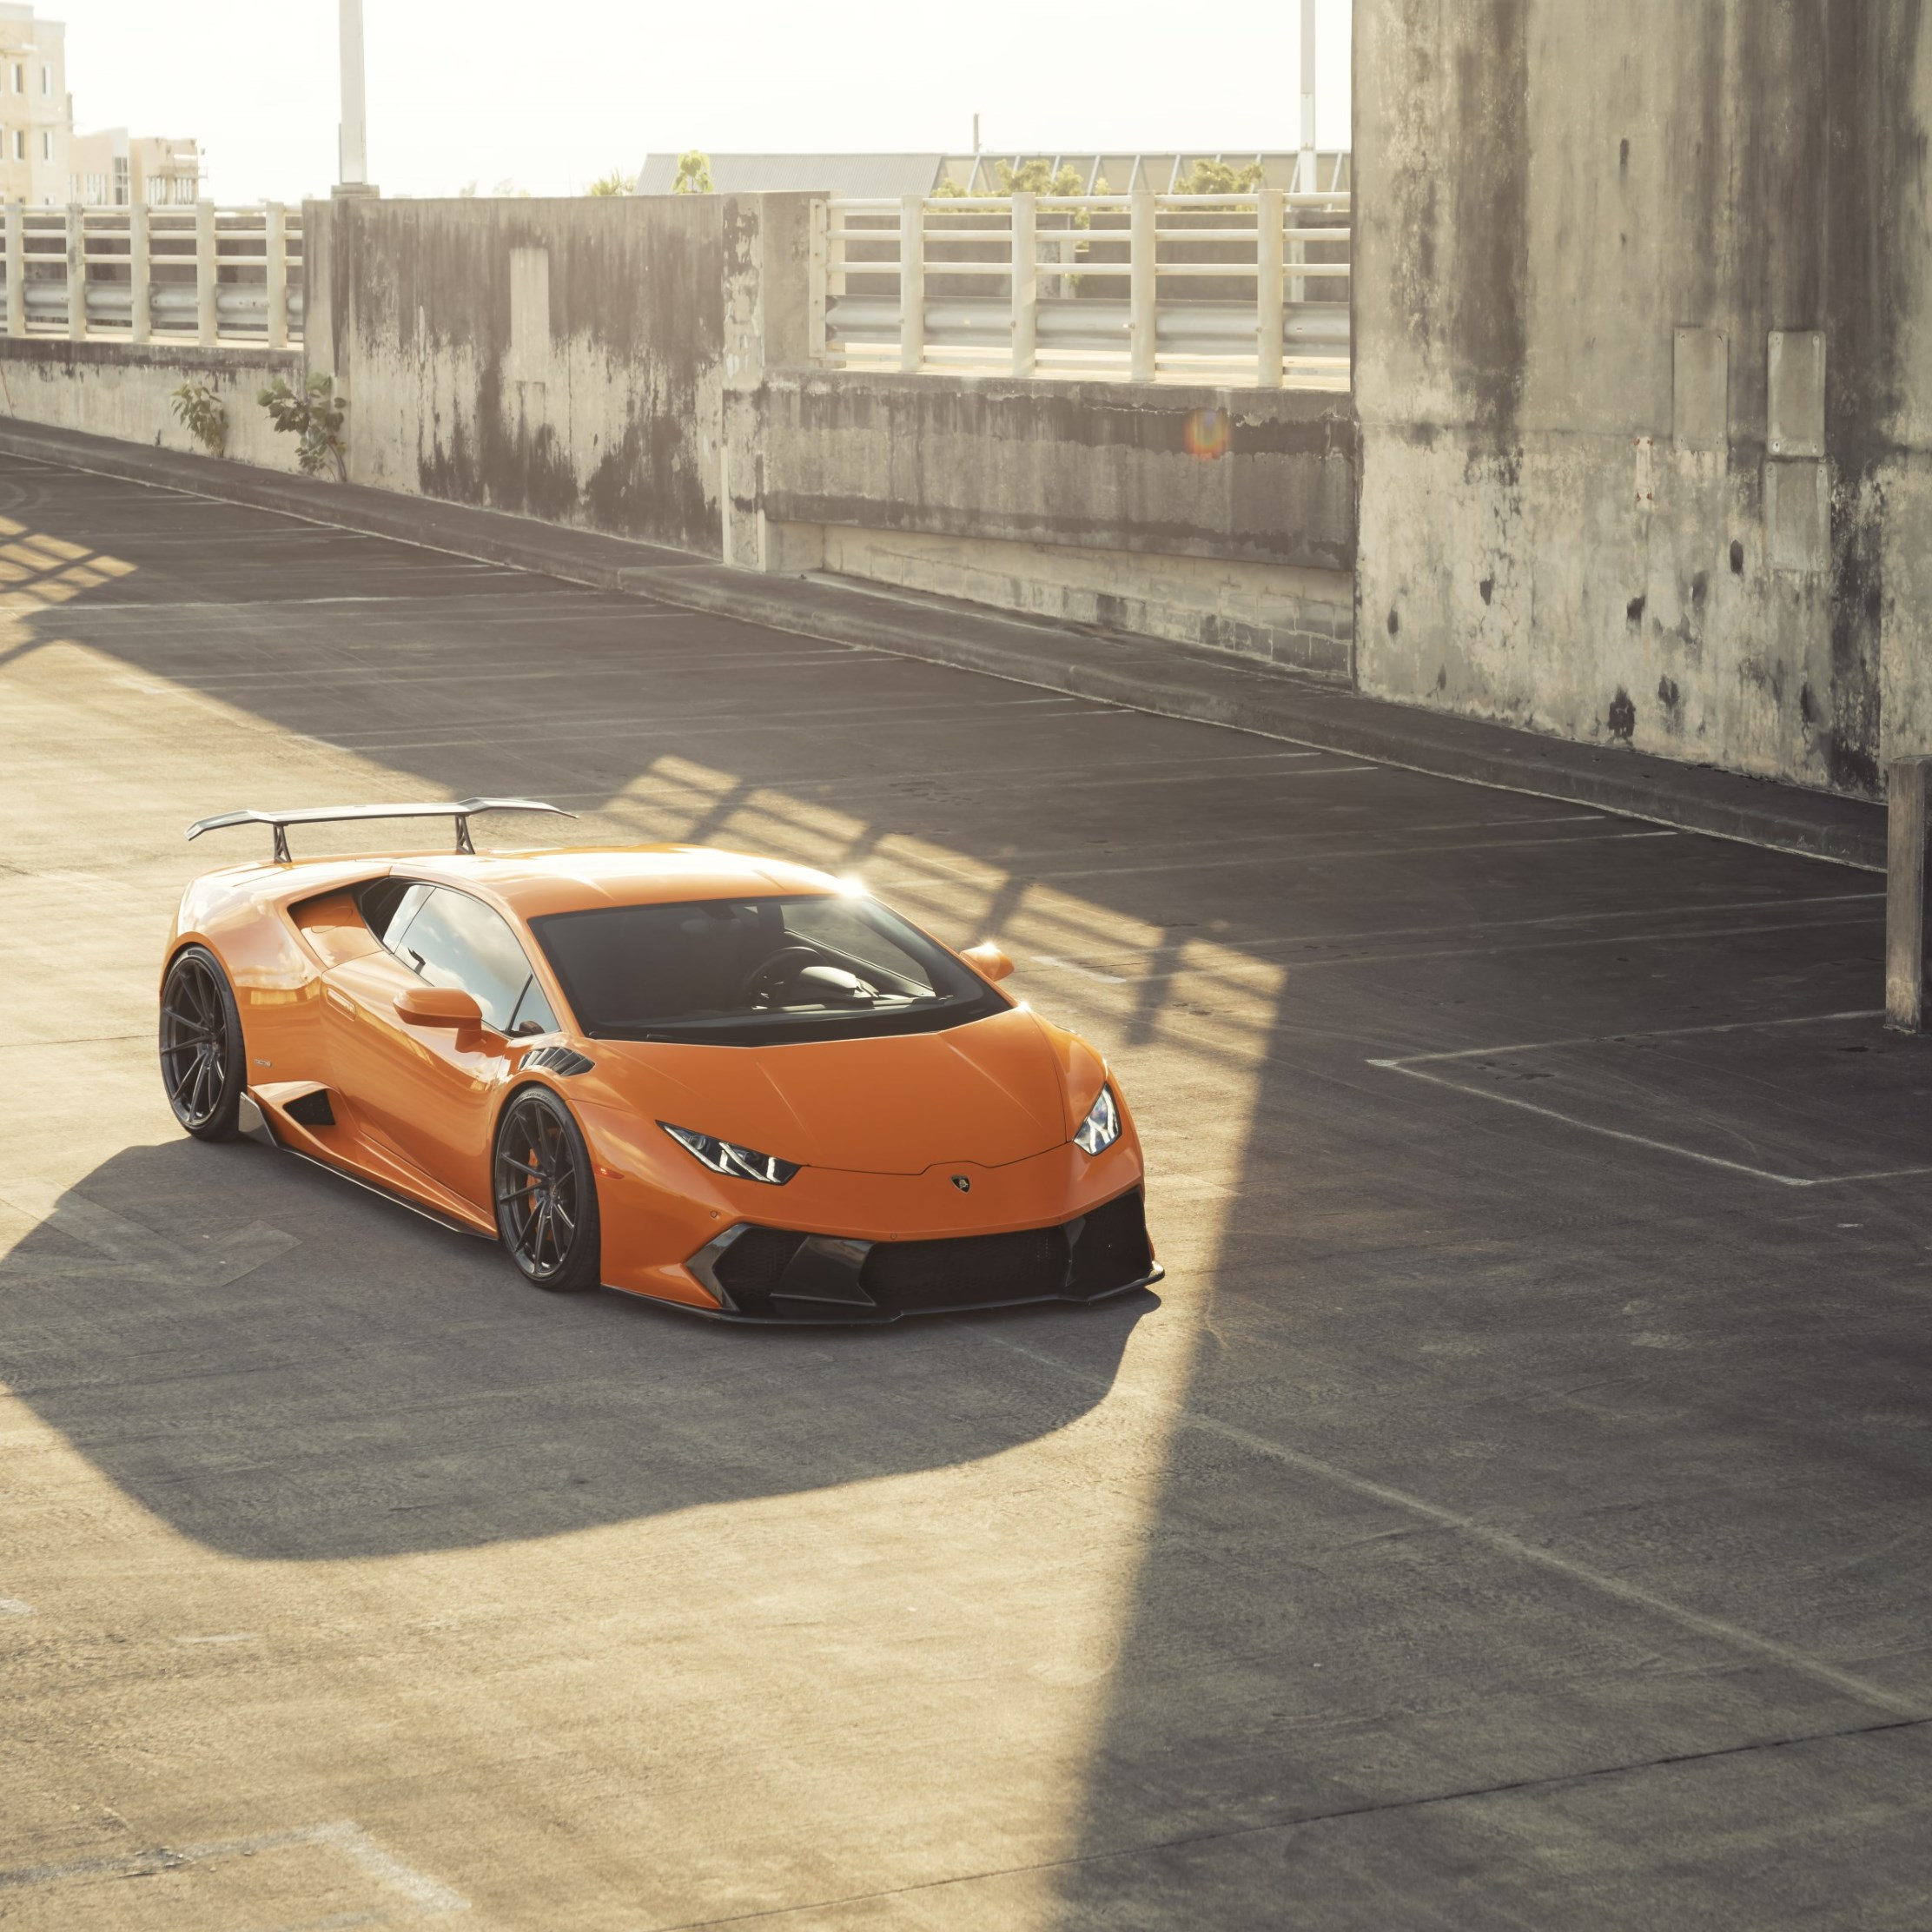 ANRKY Fish Orange Lambo Huracan wallpaper 2224x2224